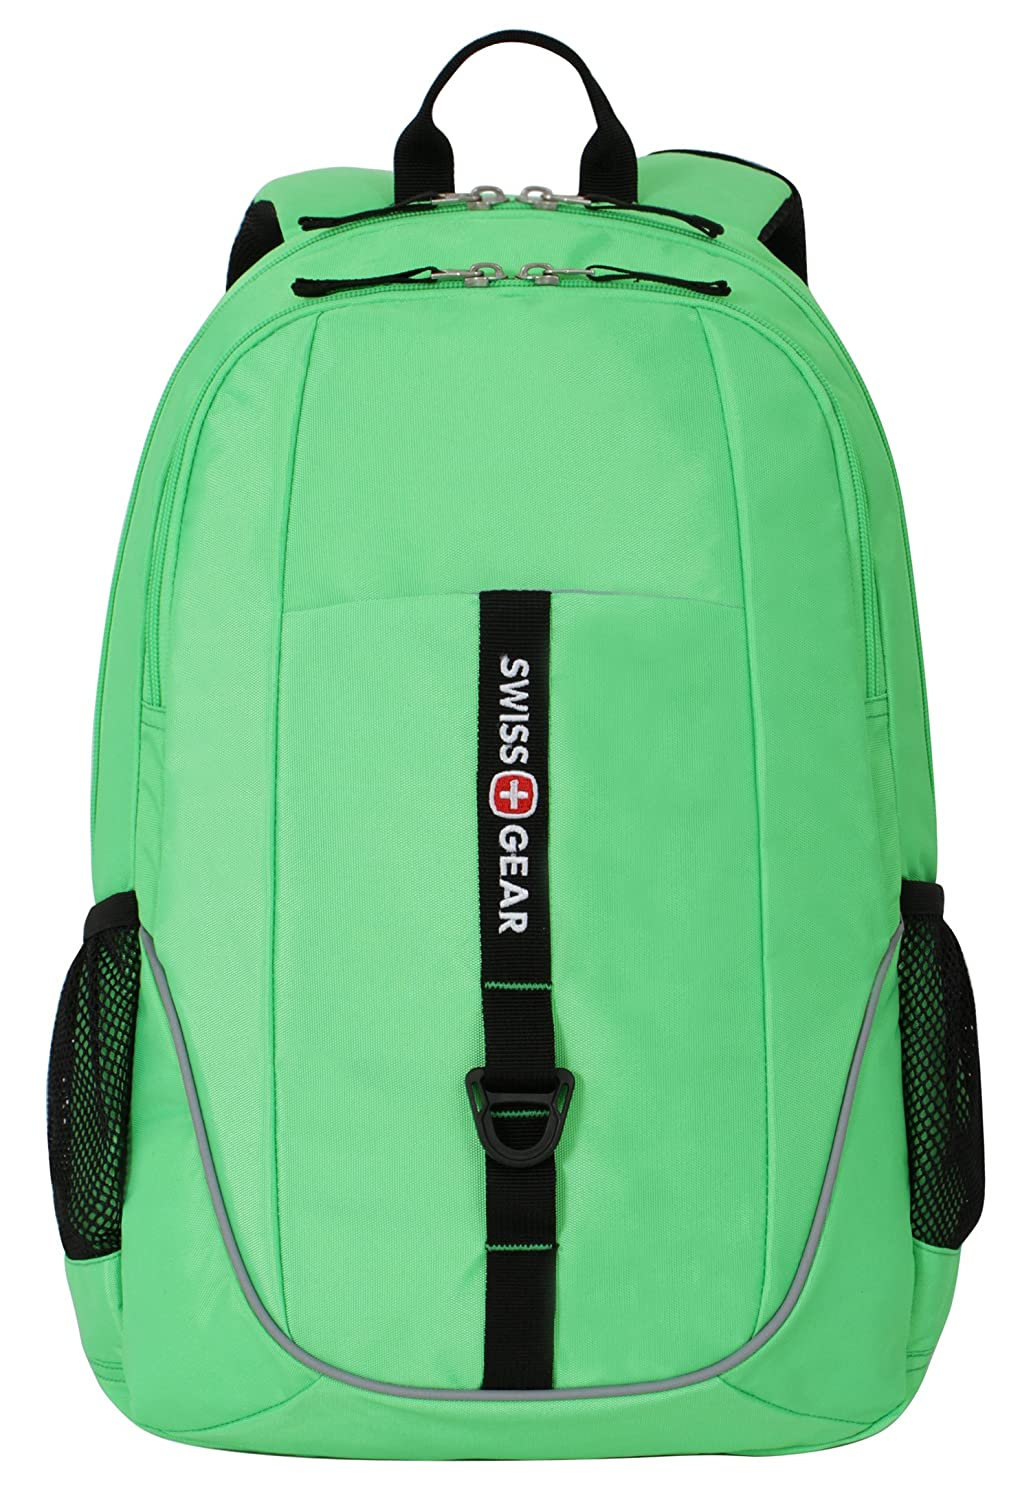 SwissGear SA6639 Neon Green Computer Backpack - Fits Most 15 Inch Laptops  and Tablets 581d1c5635519